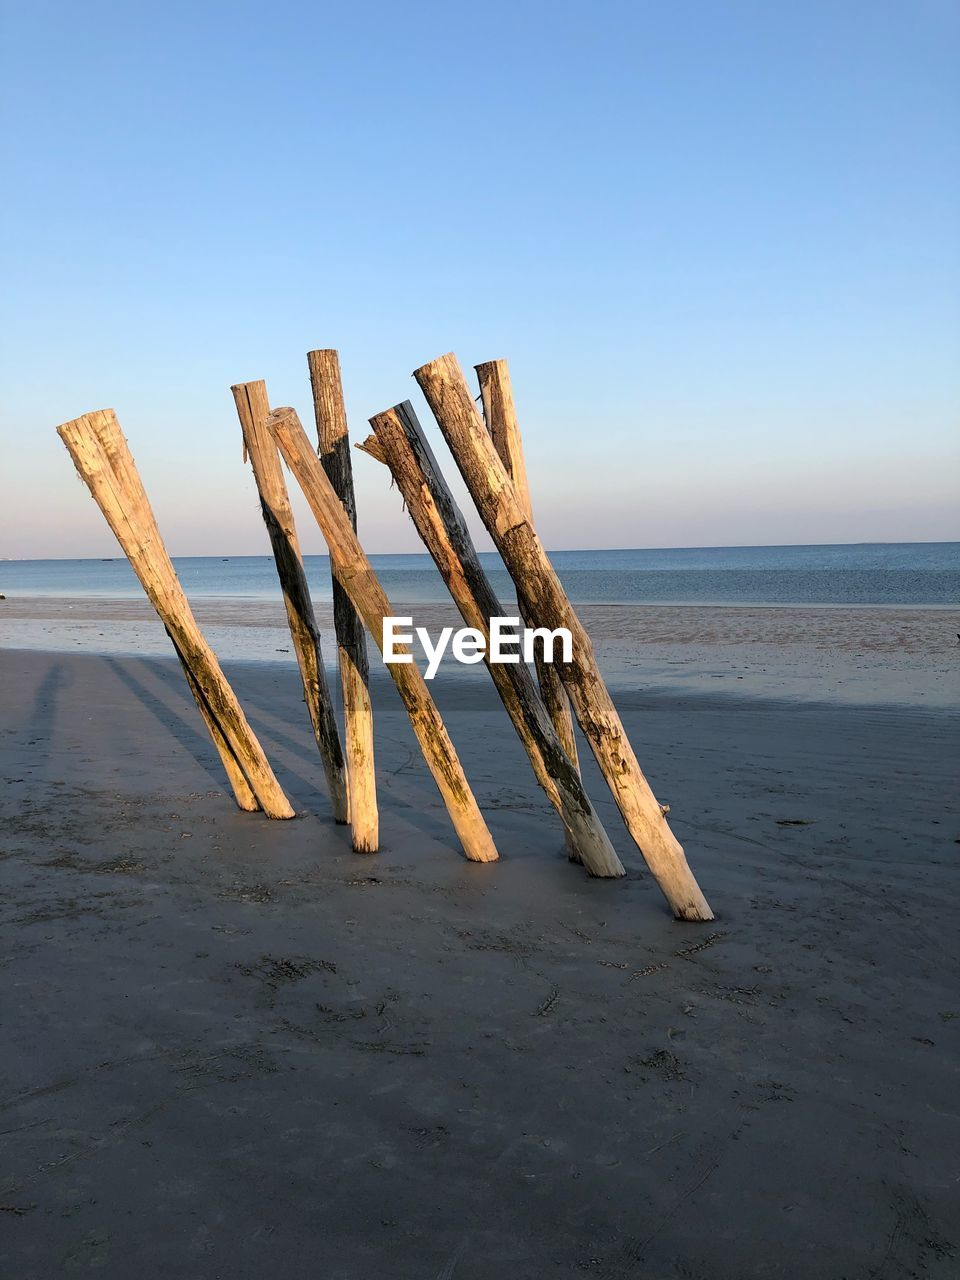 water, sea, sky, horizon, horizon over water, beach, wood - material, land, tranquil scene, tranquility, scenics - nature, beauty in nature, nature, no people, idyllic, sand, day, non-urban scene, clear sky, outdoors, post, wooden post, driftwood